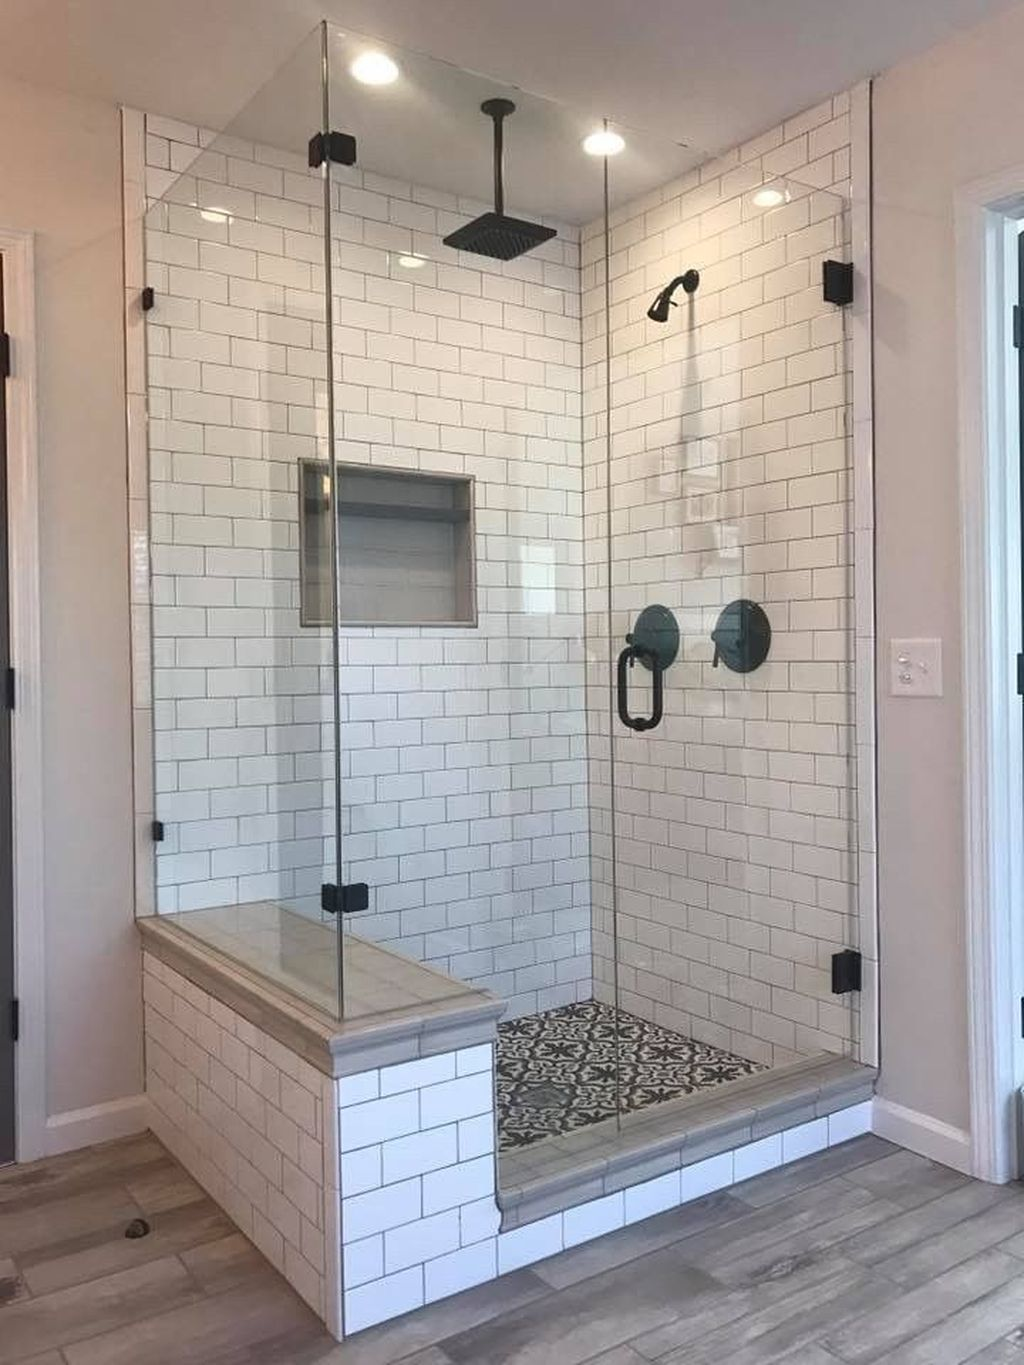 Awesome Small Bathroom Remodel Ideas On A Budget 35